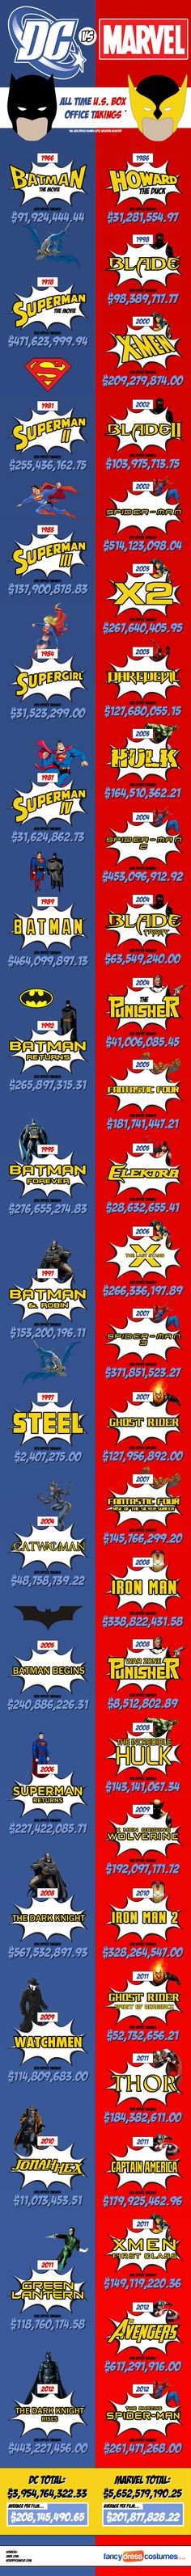 Marvel Vs. DC Movie Infographic - Marvel Is Winning